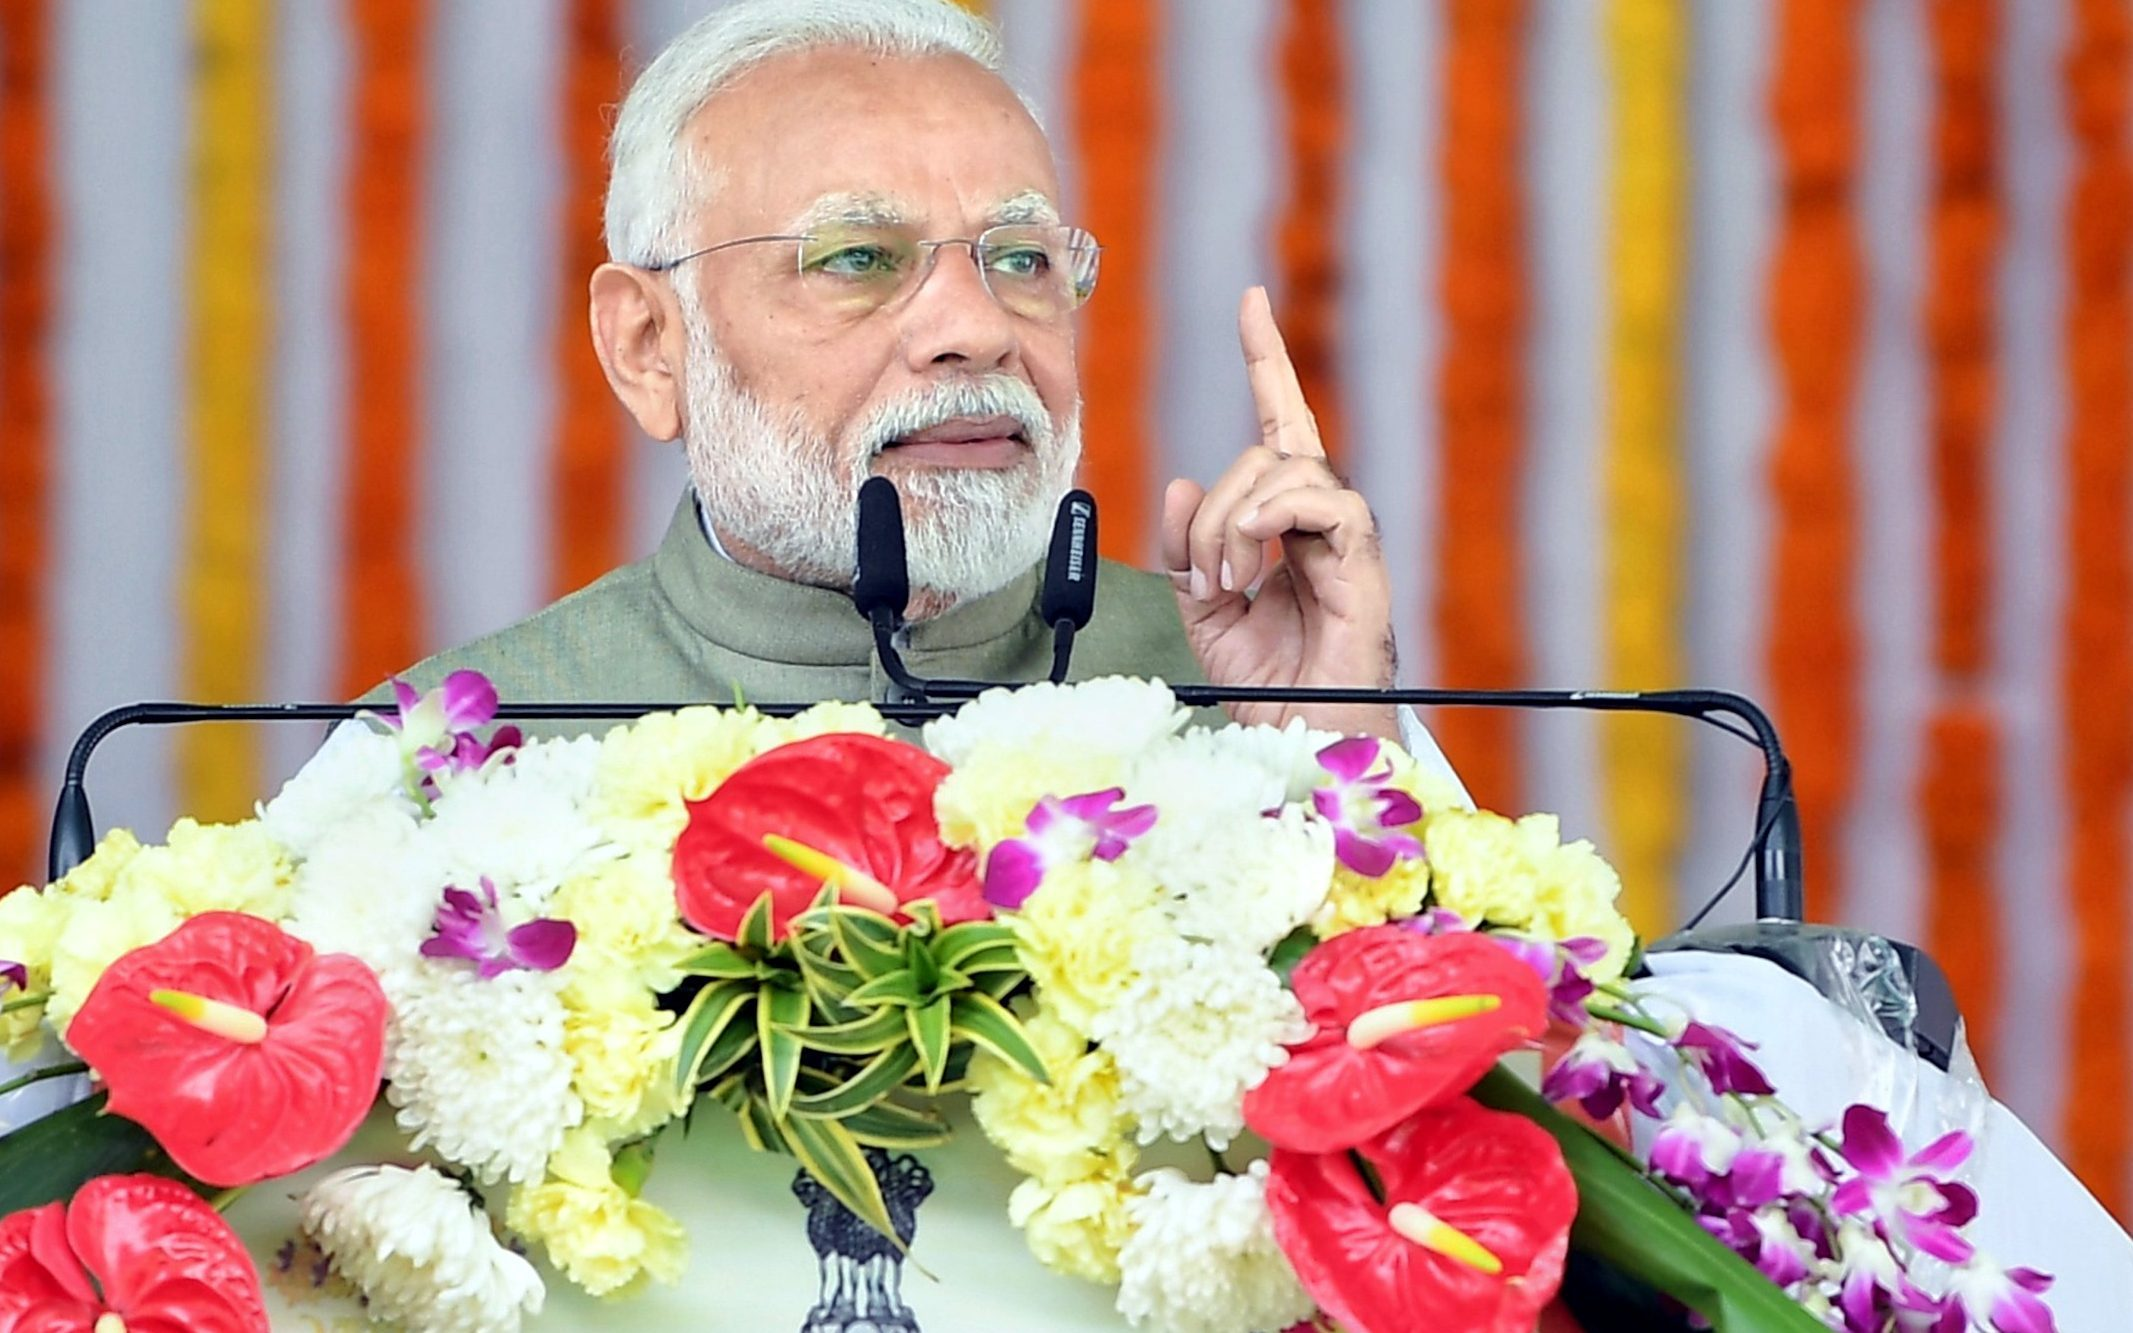 PM's address at Samajik Adhikarita Shivir in Prayagraj, Uttar Pradesh